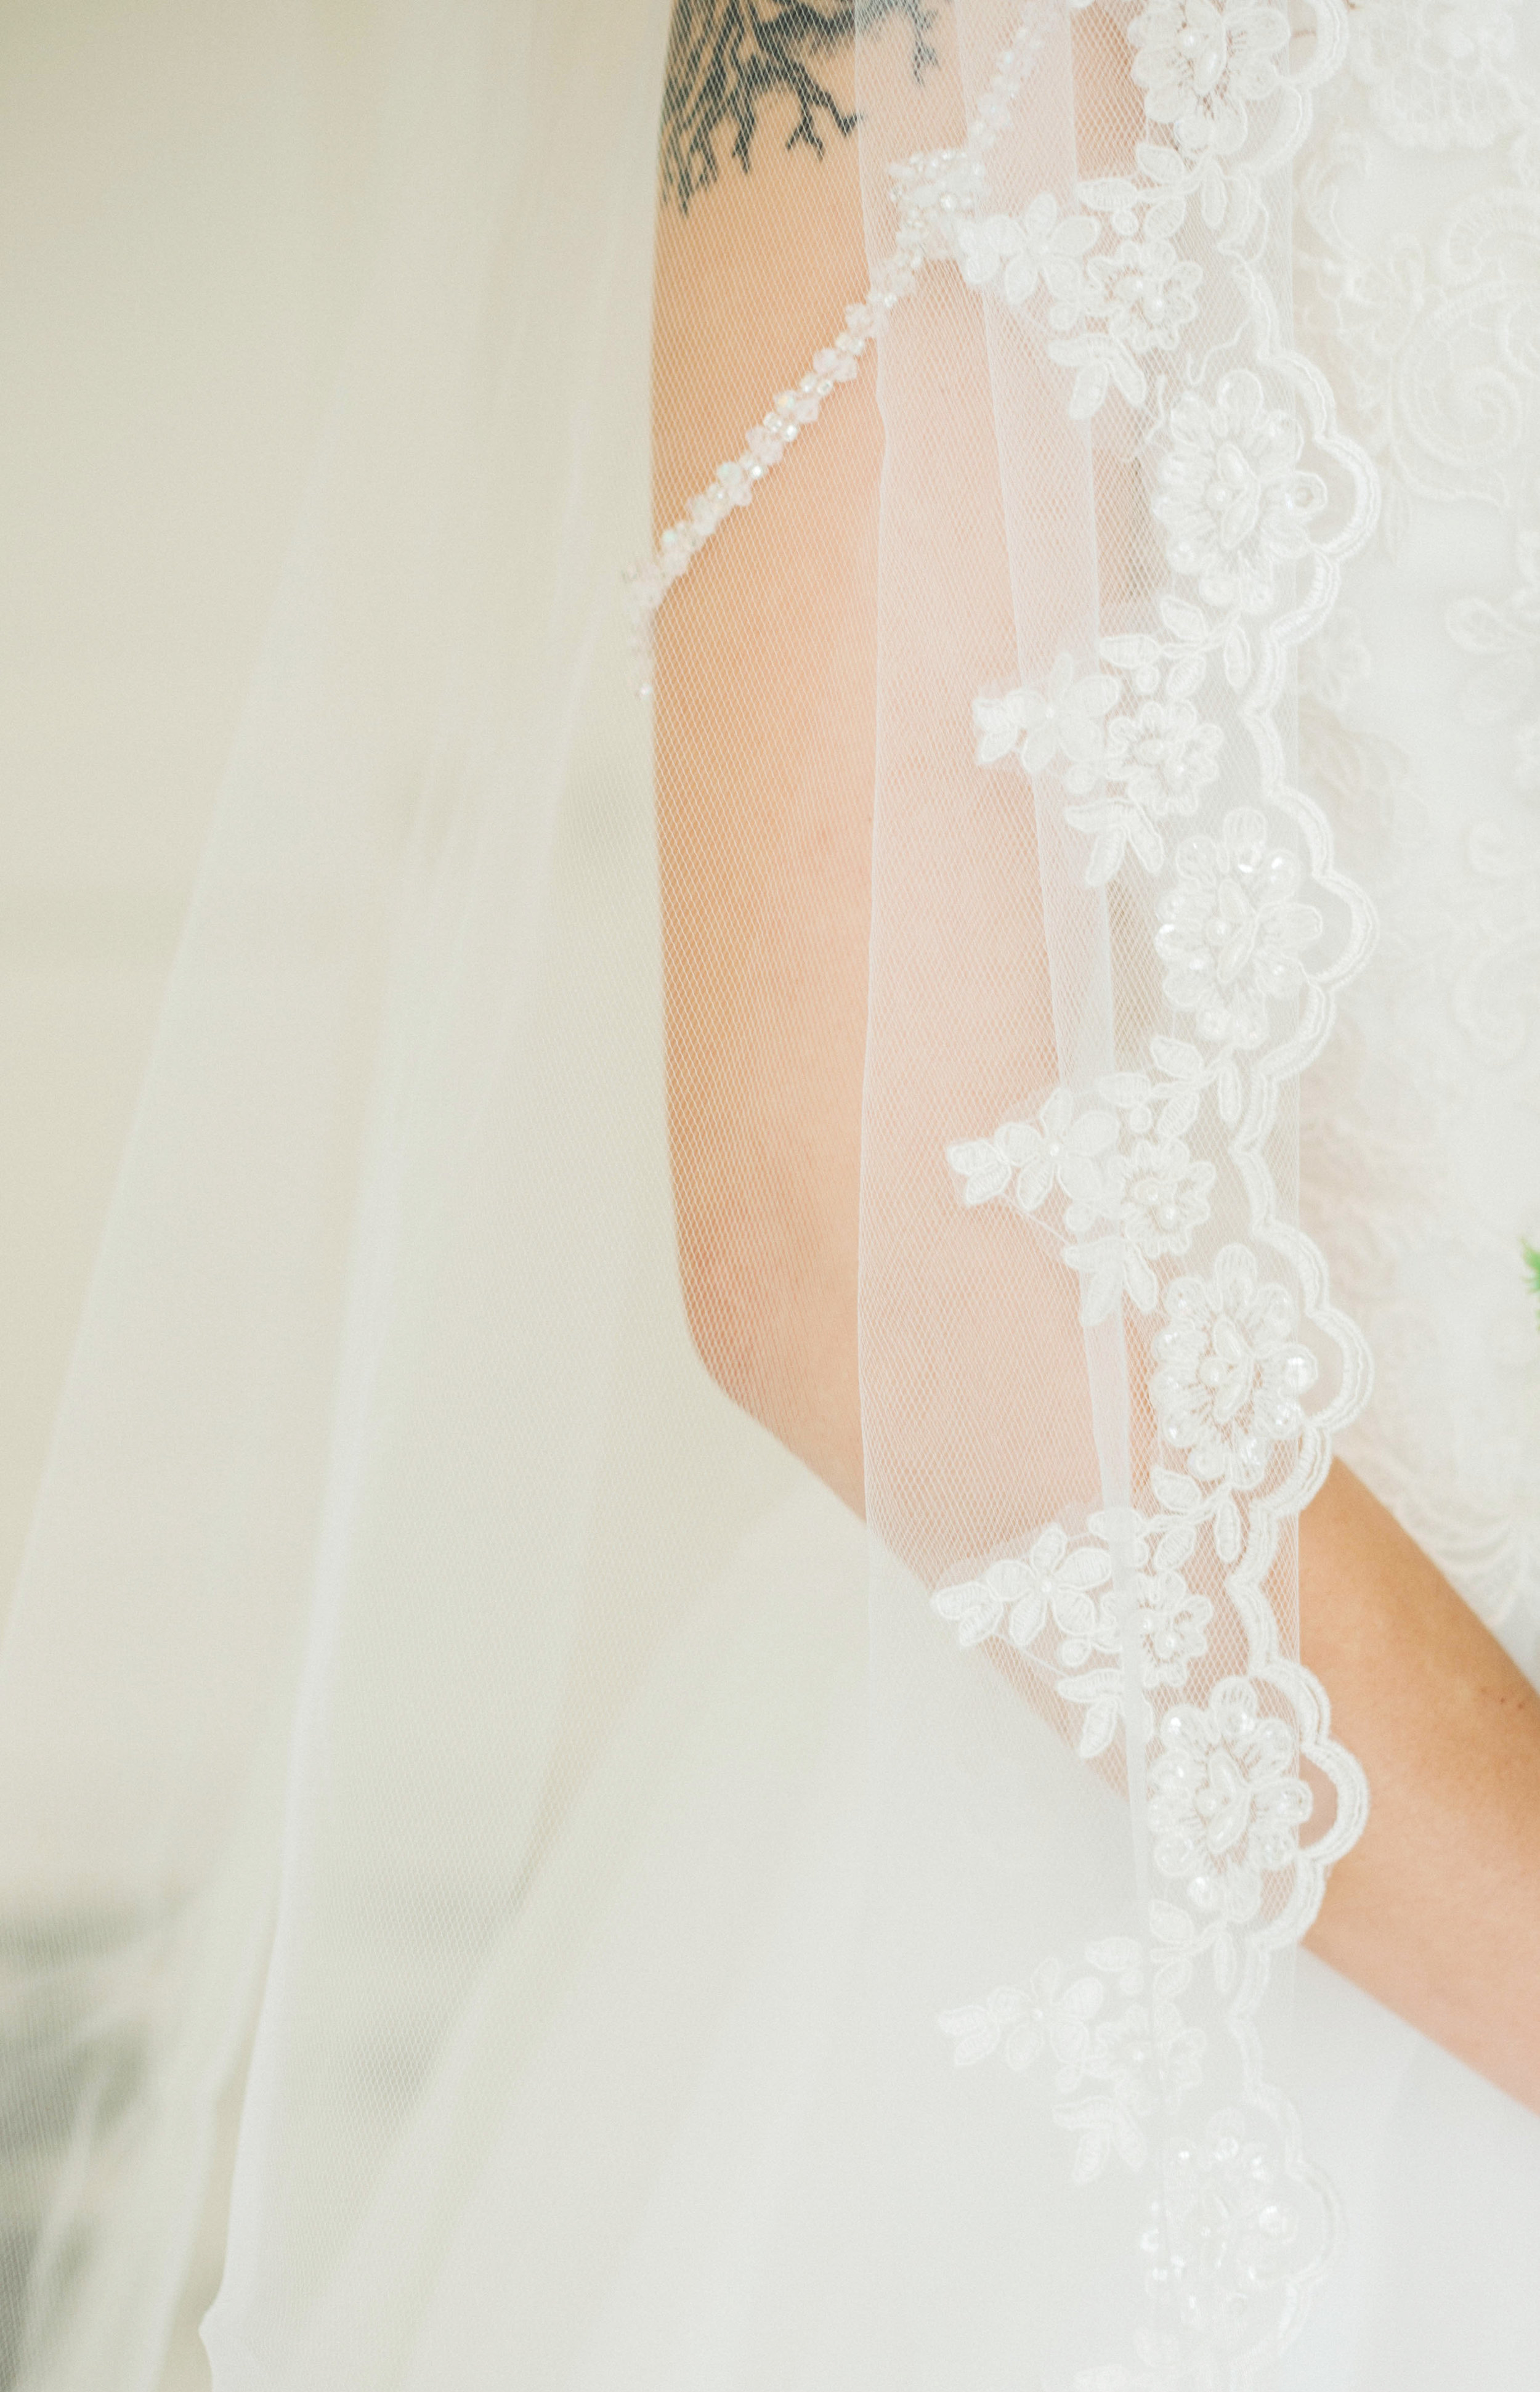 A lace cathedral length wedding veil.